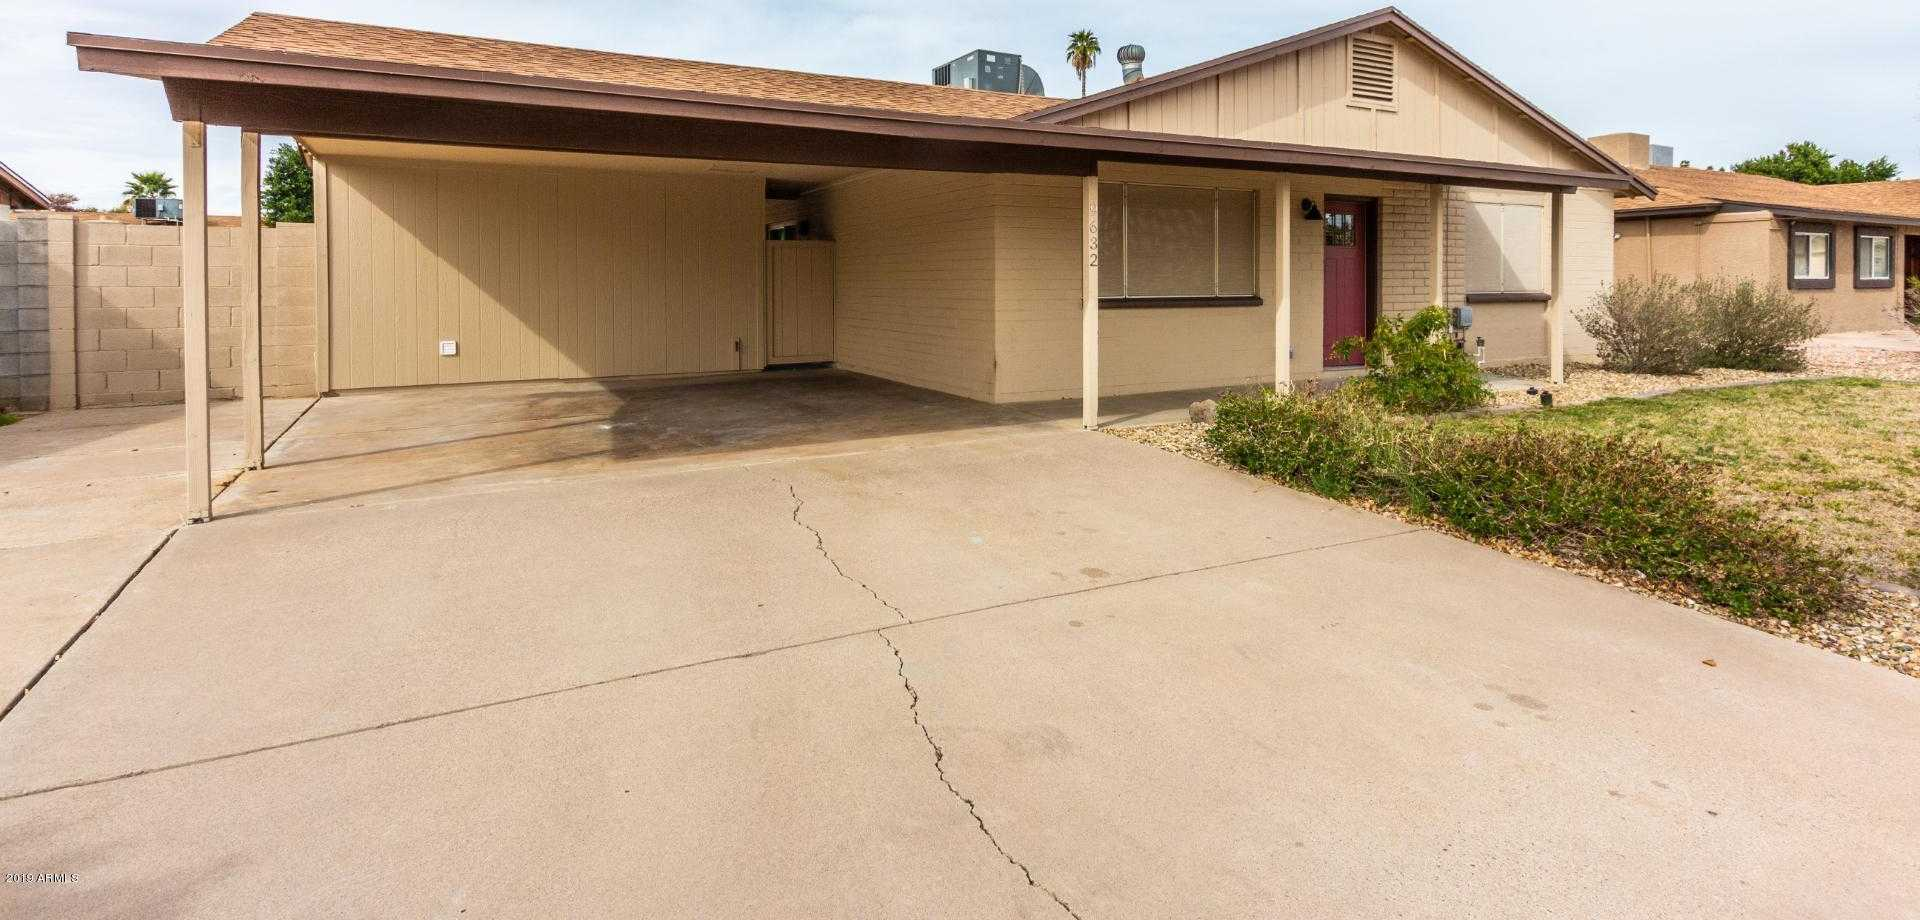 $218,888 - 3Br/2Ba - Home for Sale in Continental Meadows North 5, Glendale